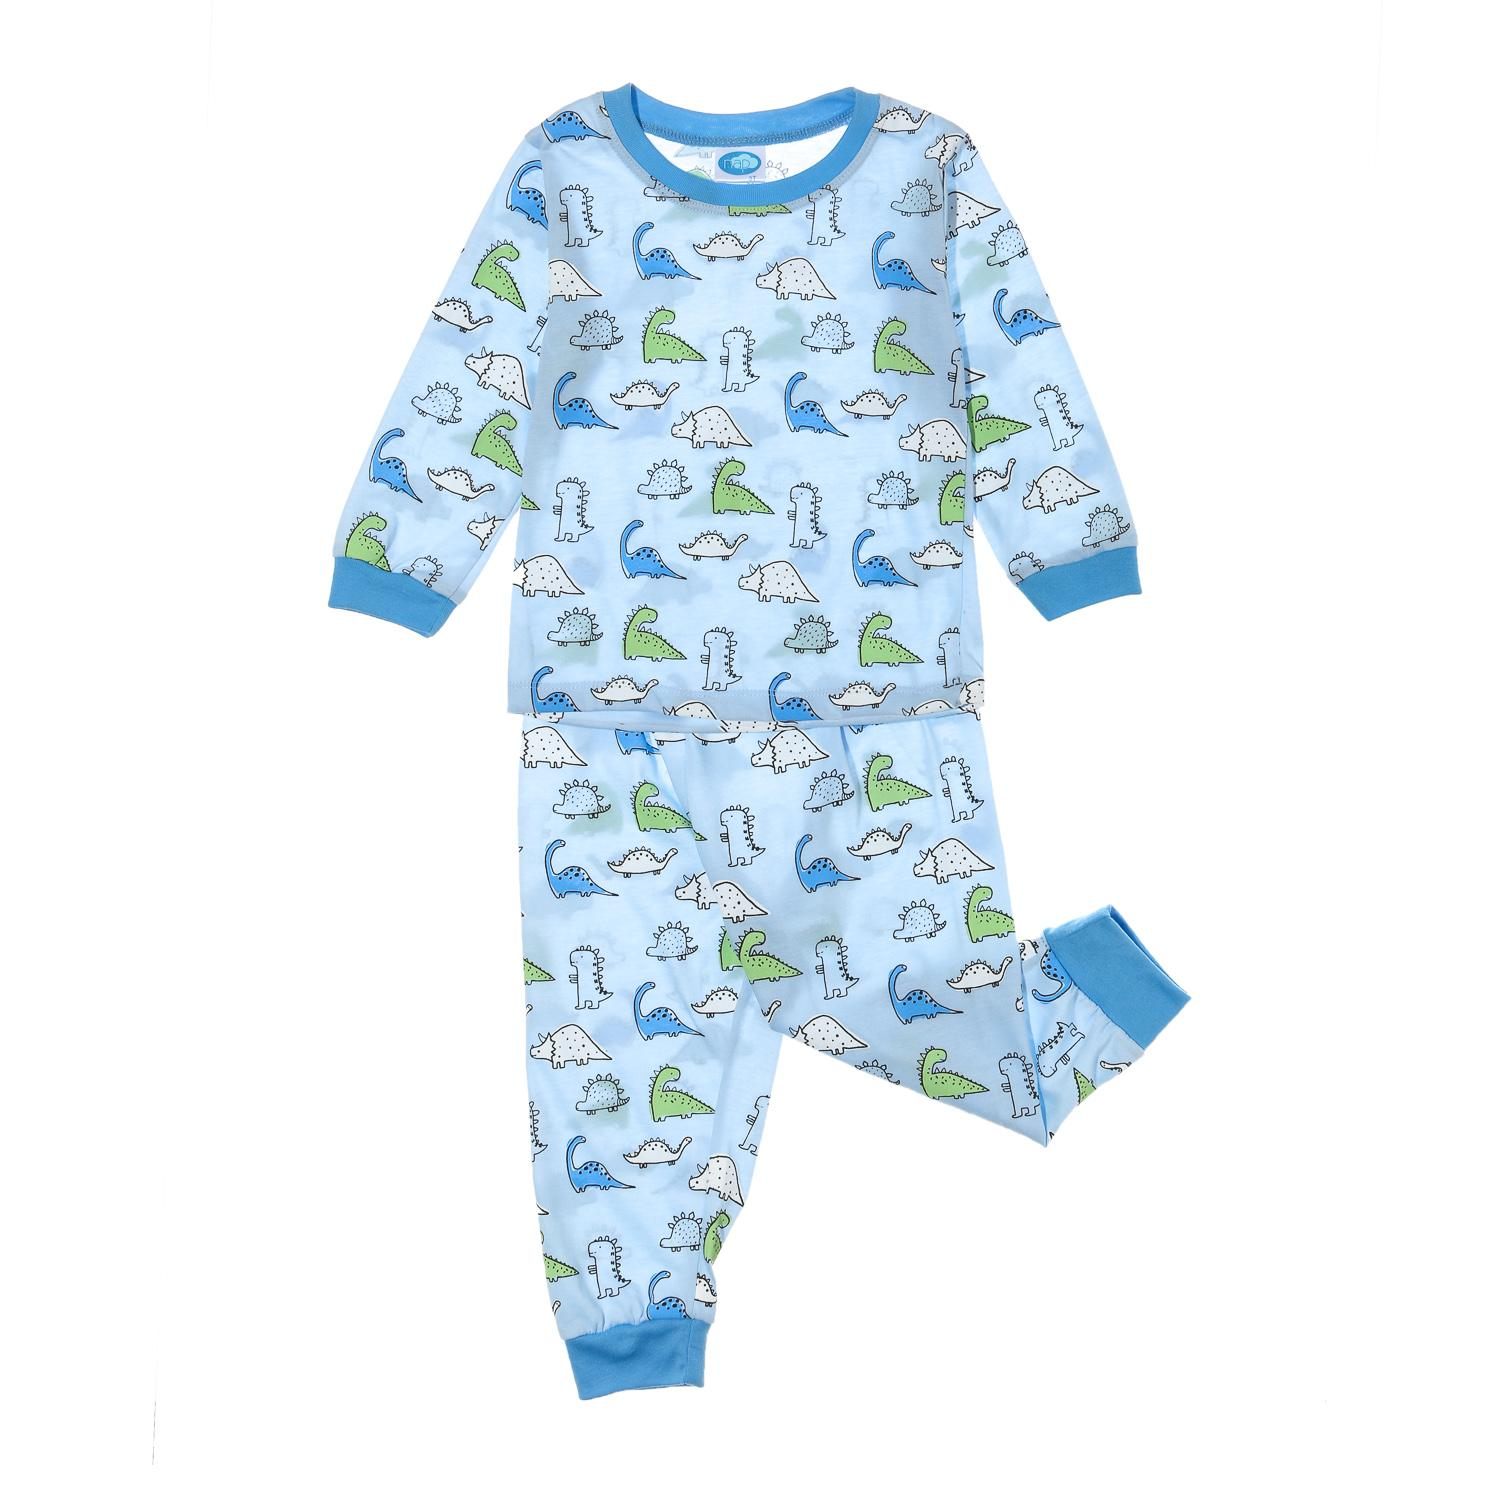 Nap Toddler Boys Dinos Pajama Set In Blue By The Sm Store.